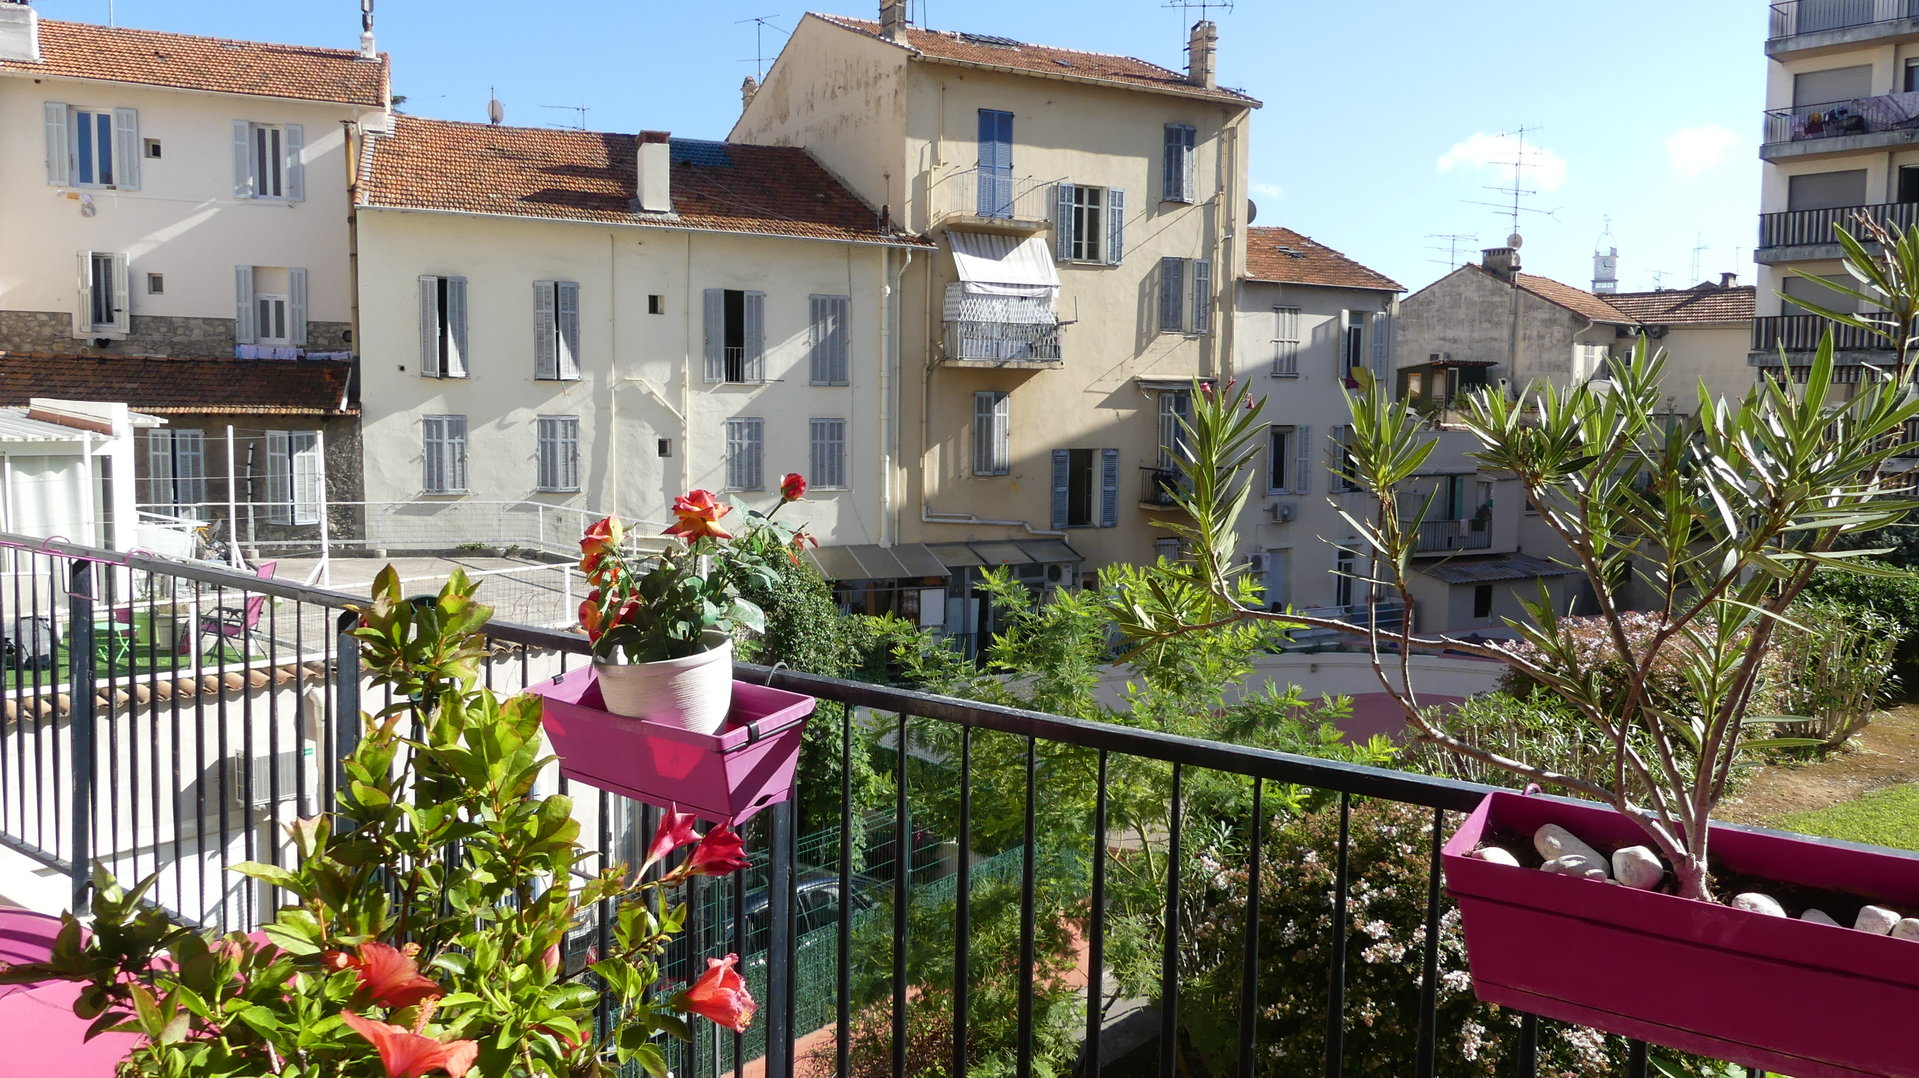 For sale beautiful 2 rooms 42.03 m² completely renovated, in a quiet area facing south